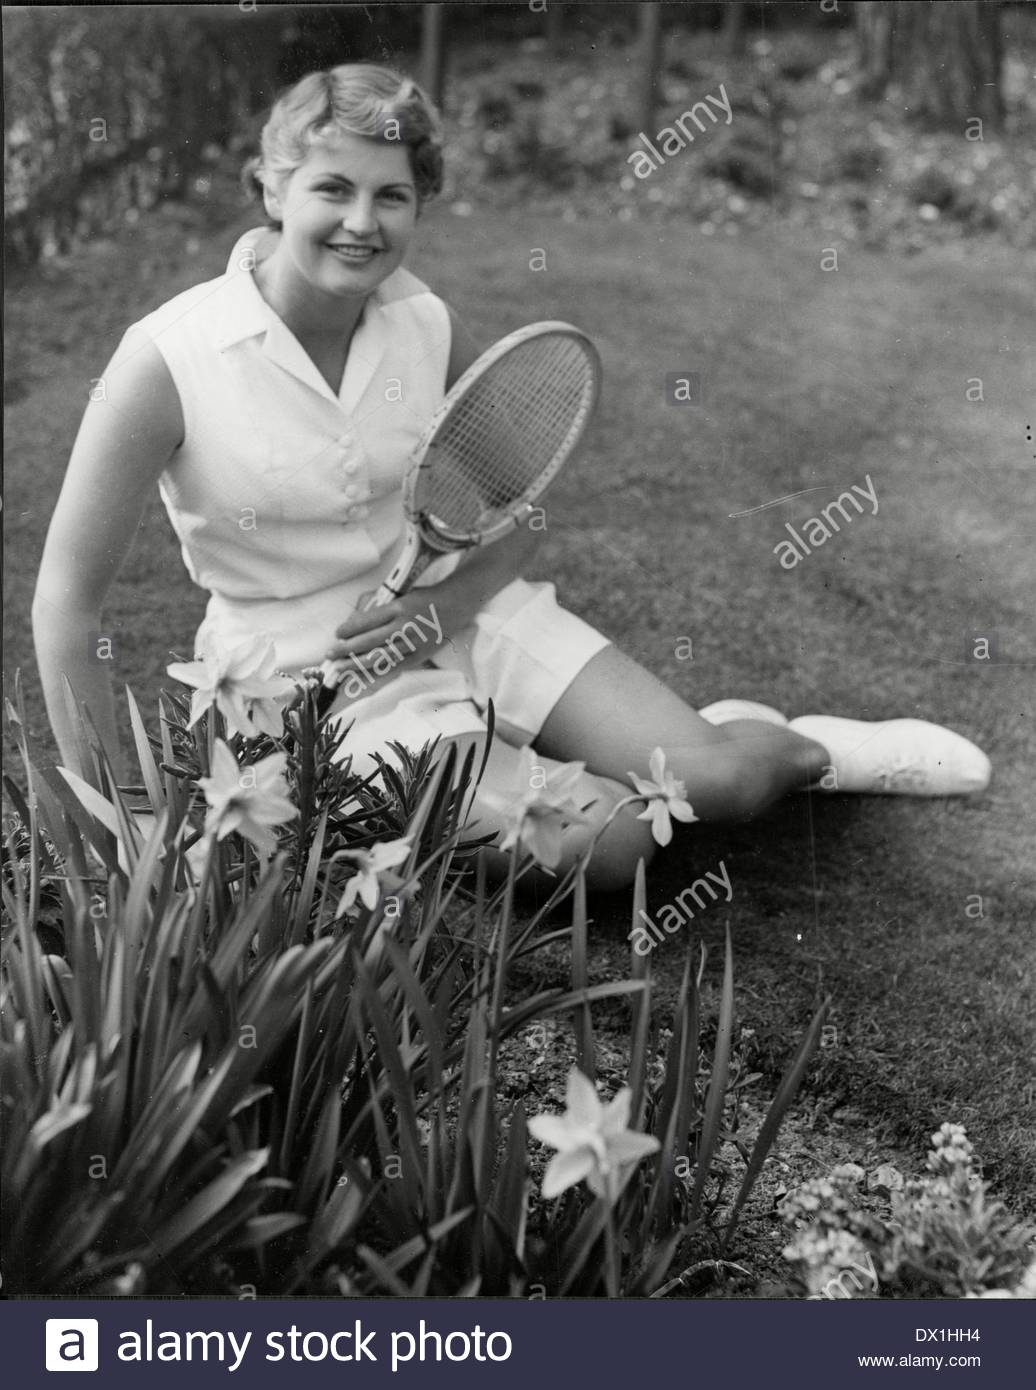 Biographies of Female Tennis Players Page 239 TennisForum